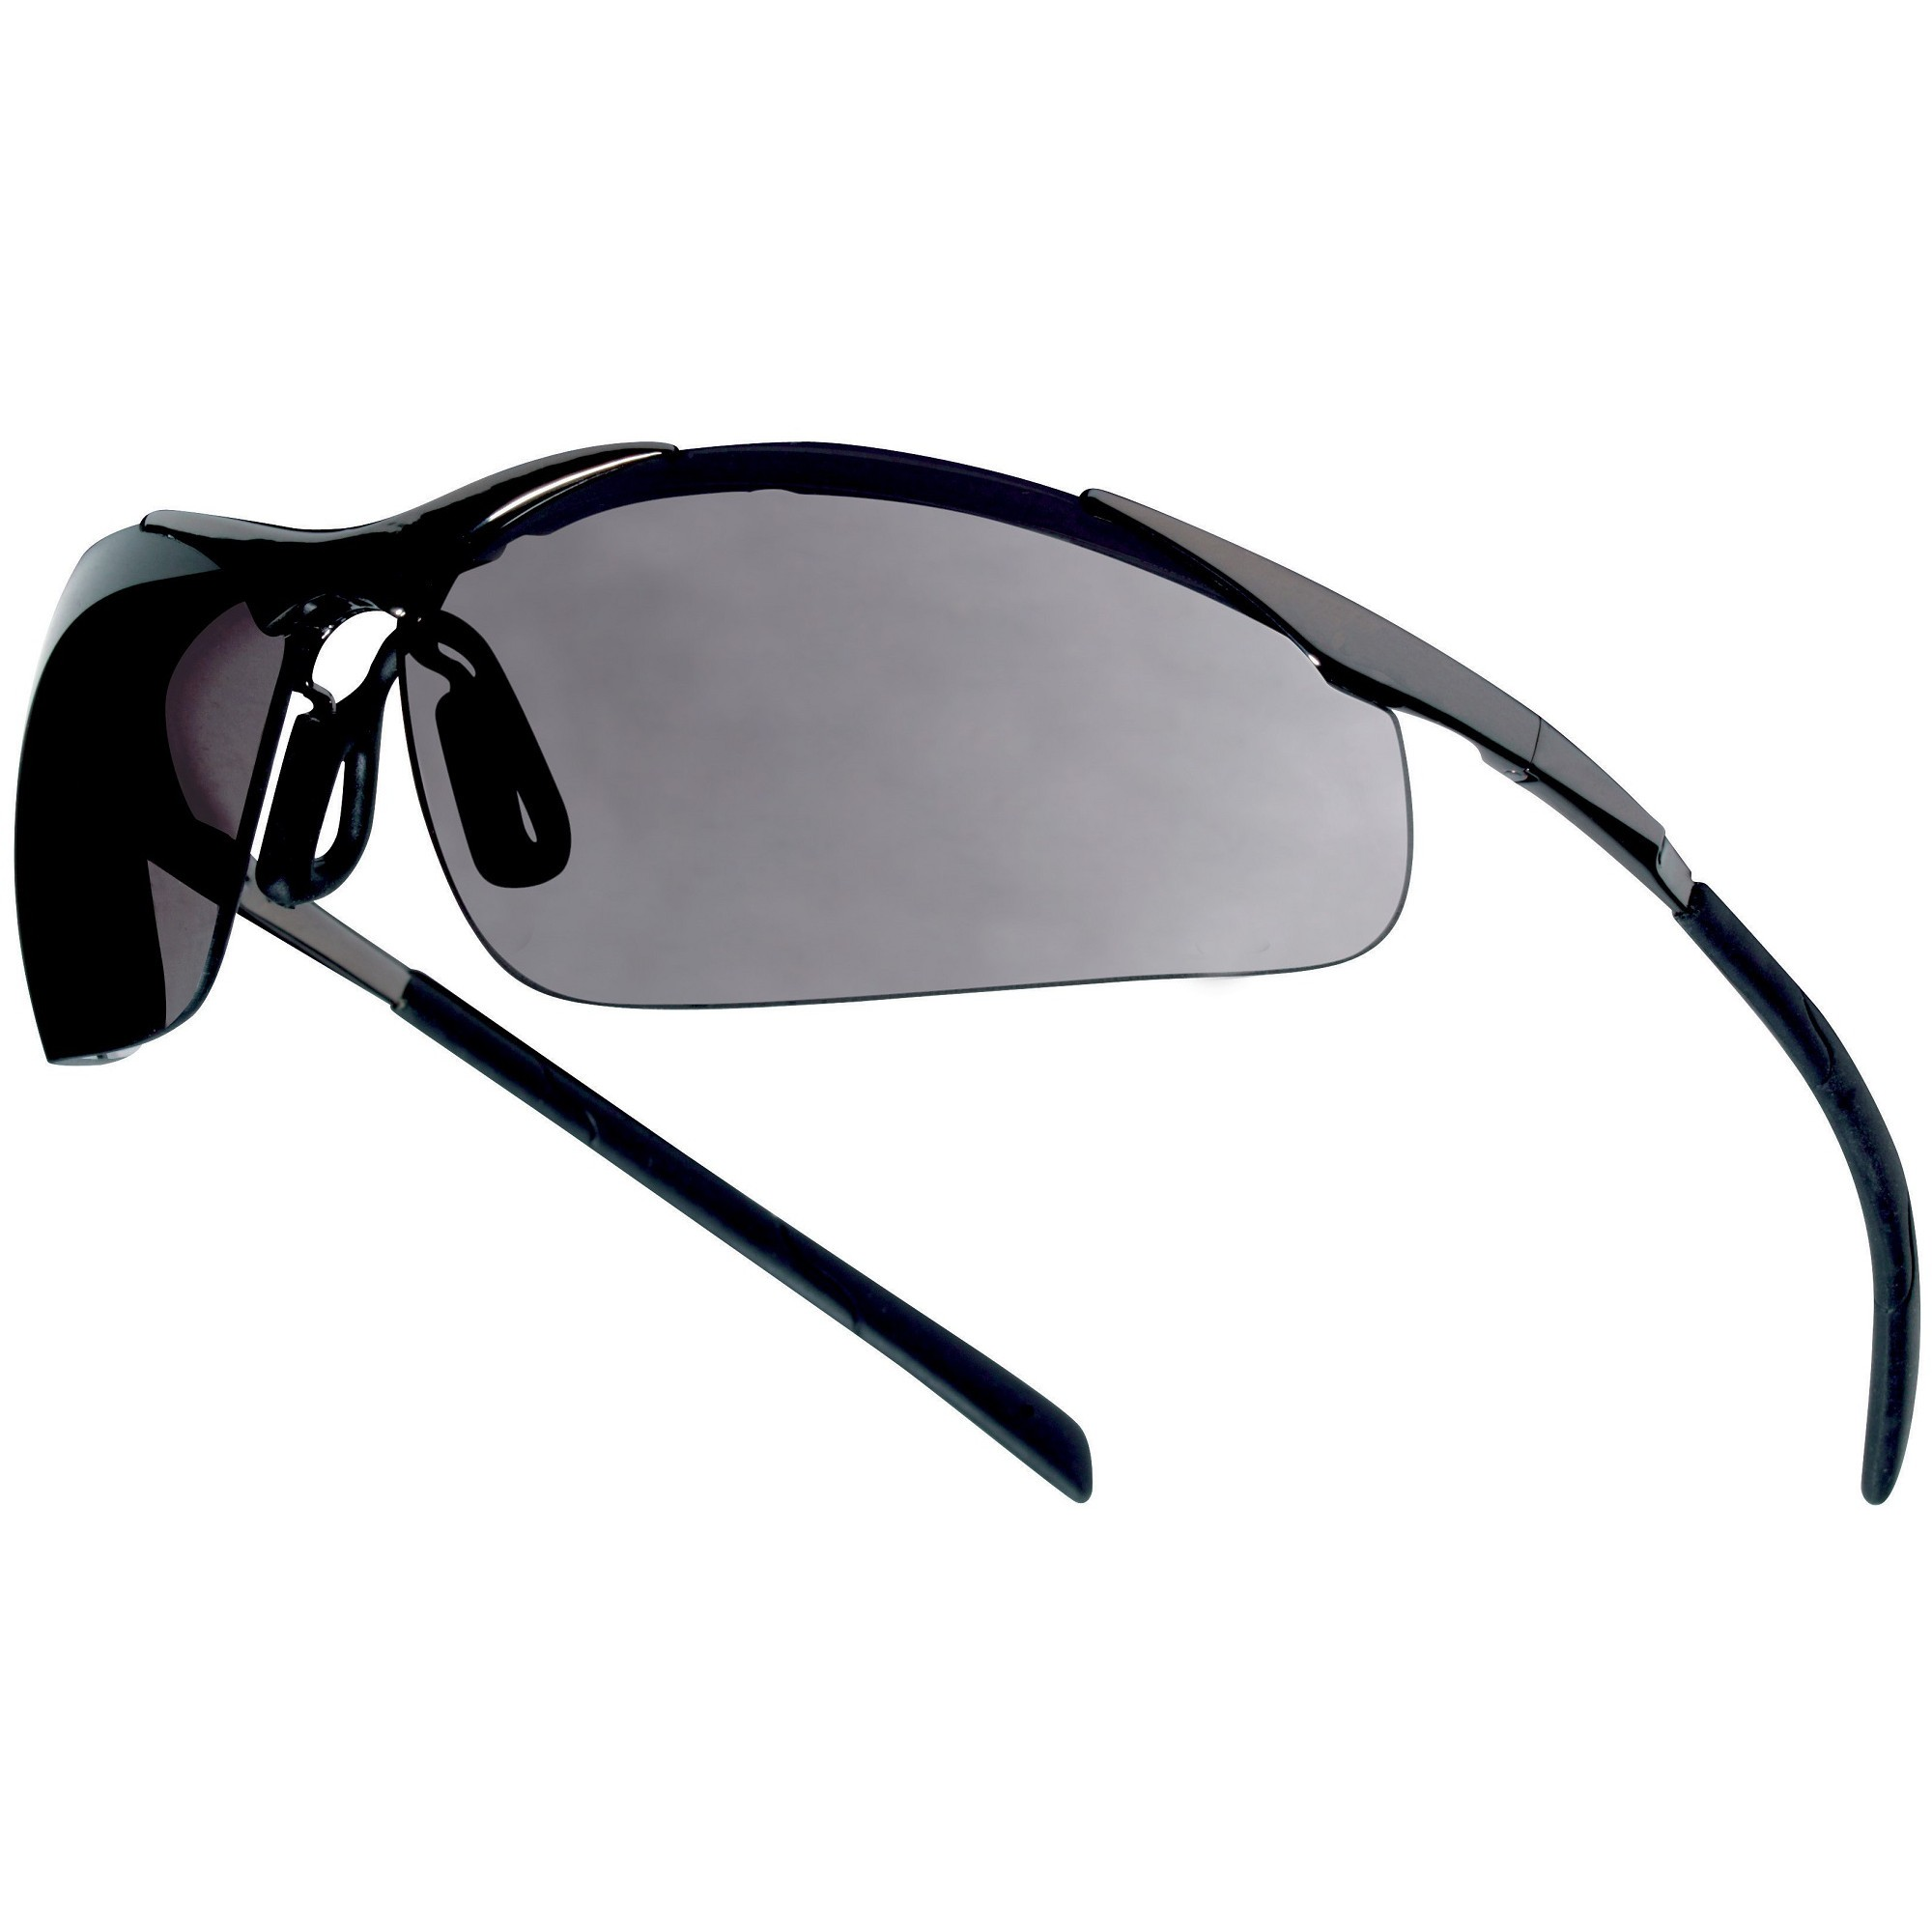 ee1ef25ae372 Bolle 40050 Contour Metal Safety Glasses - Silver Metal Temples - Smoke  Anti-fog Lens